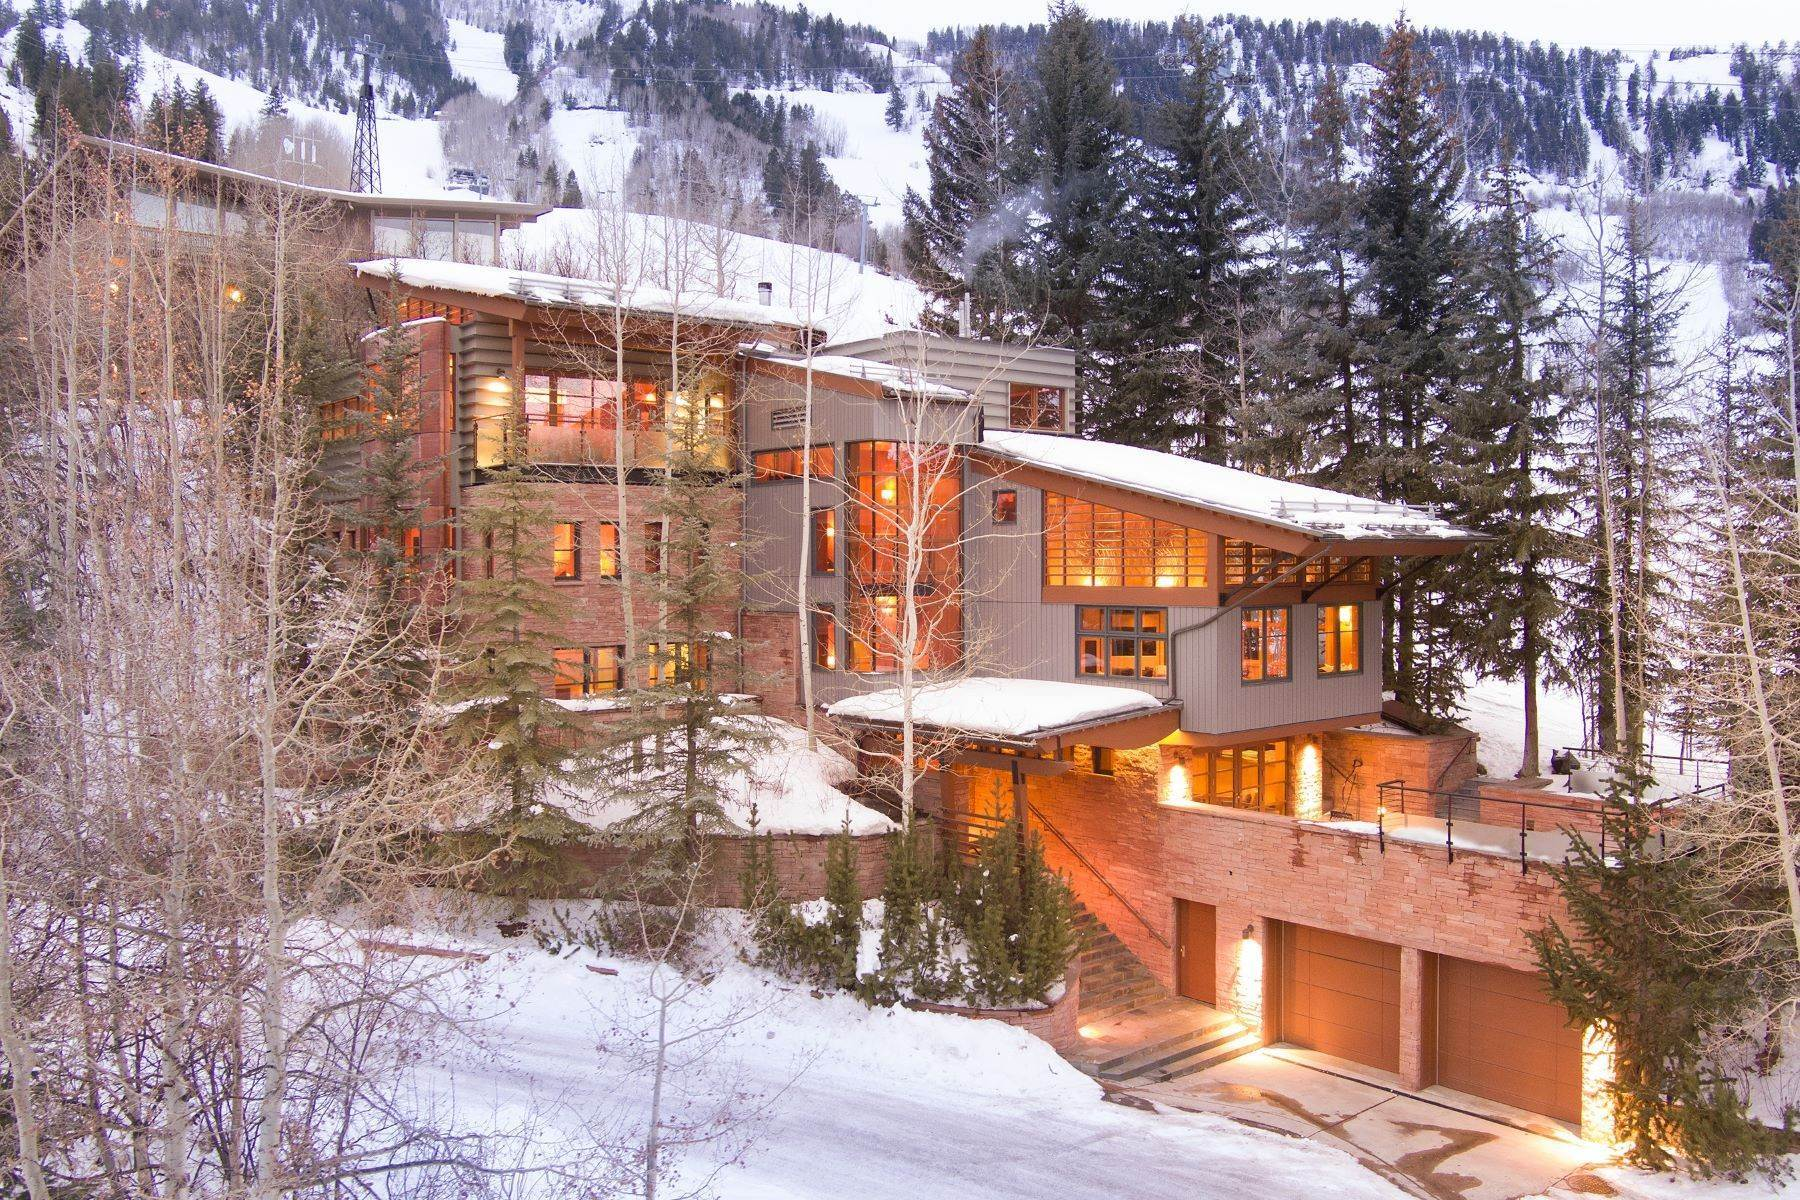 Single Family Homes for Sale at The House on Little Nell 550 Aspen Alps Road Aspen, Colorado 81611 United States